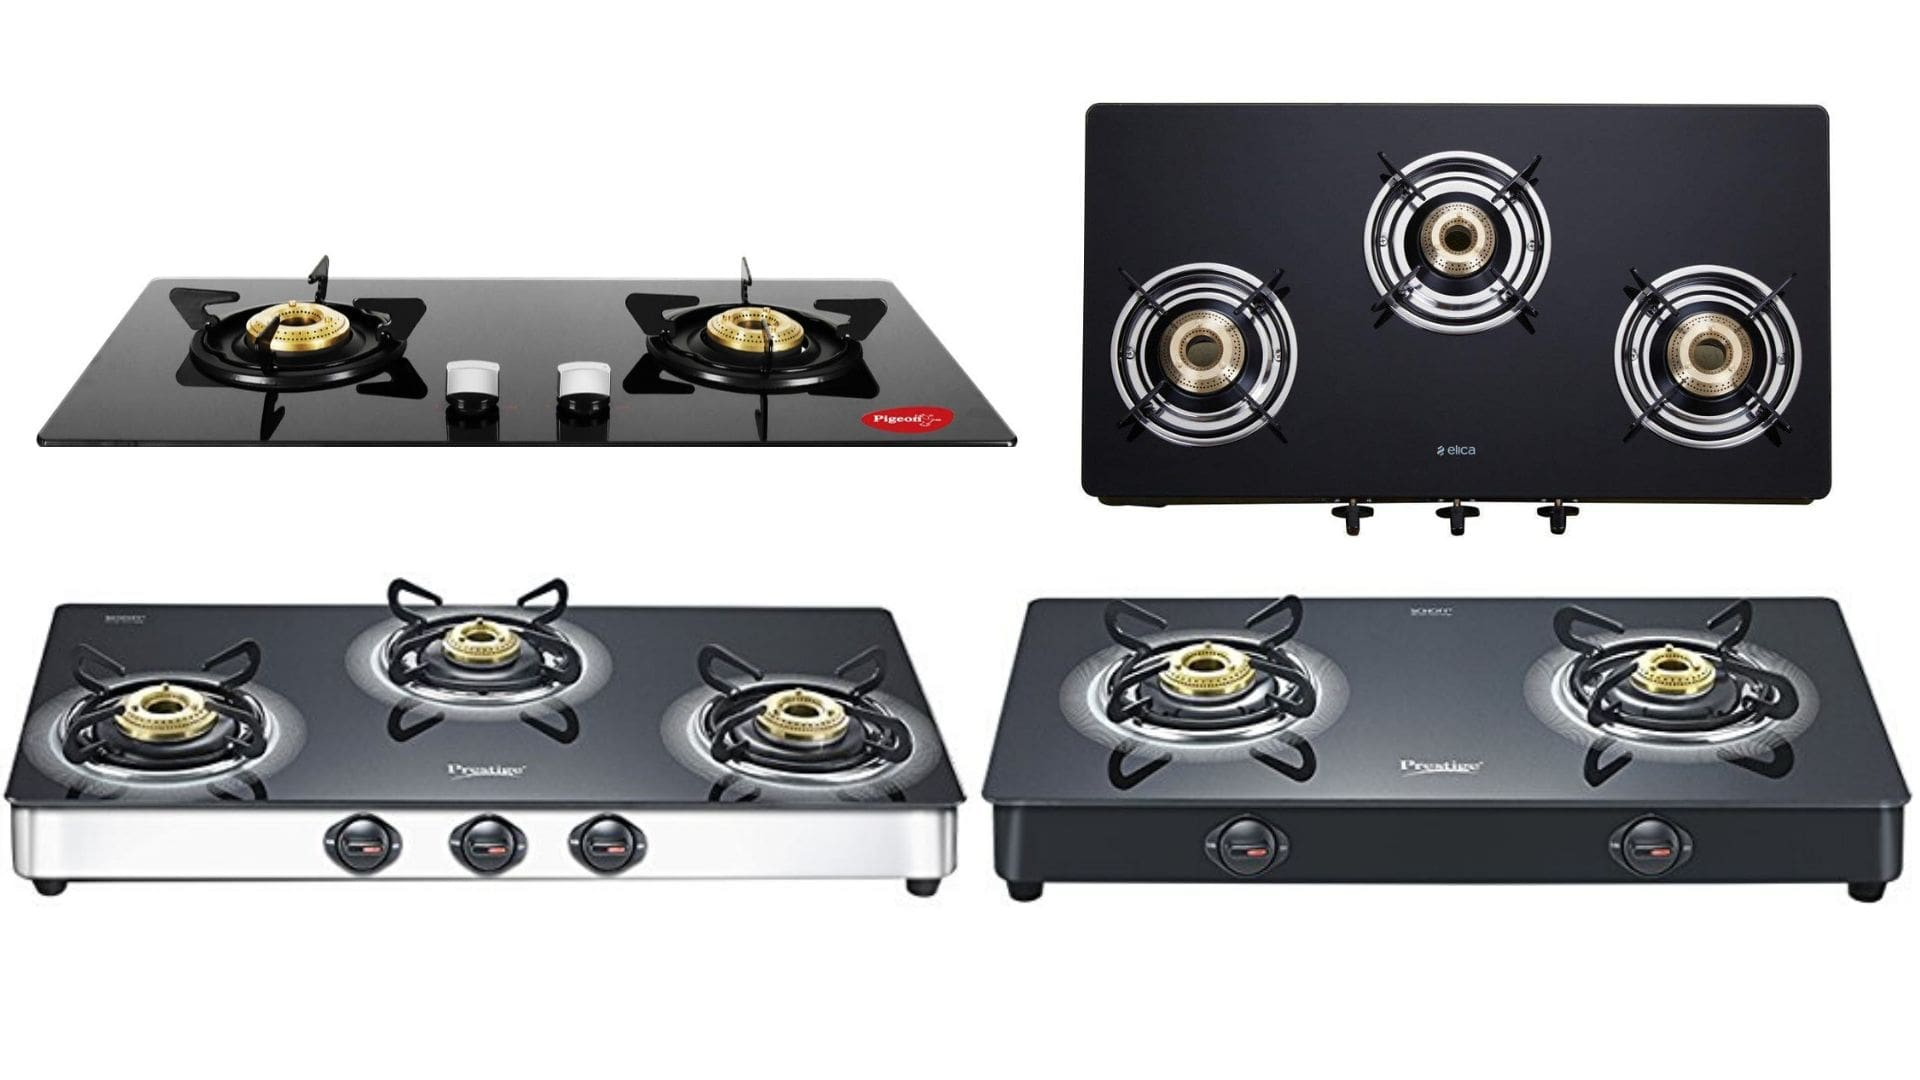 Prestige Infinity 2 Brass Burner LPG Stove 8MM Toughened Glass With Spill Tray